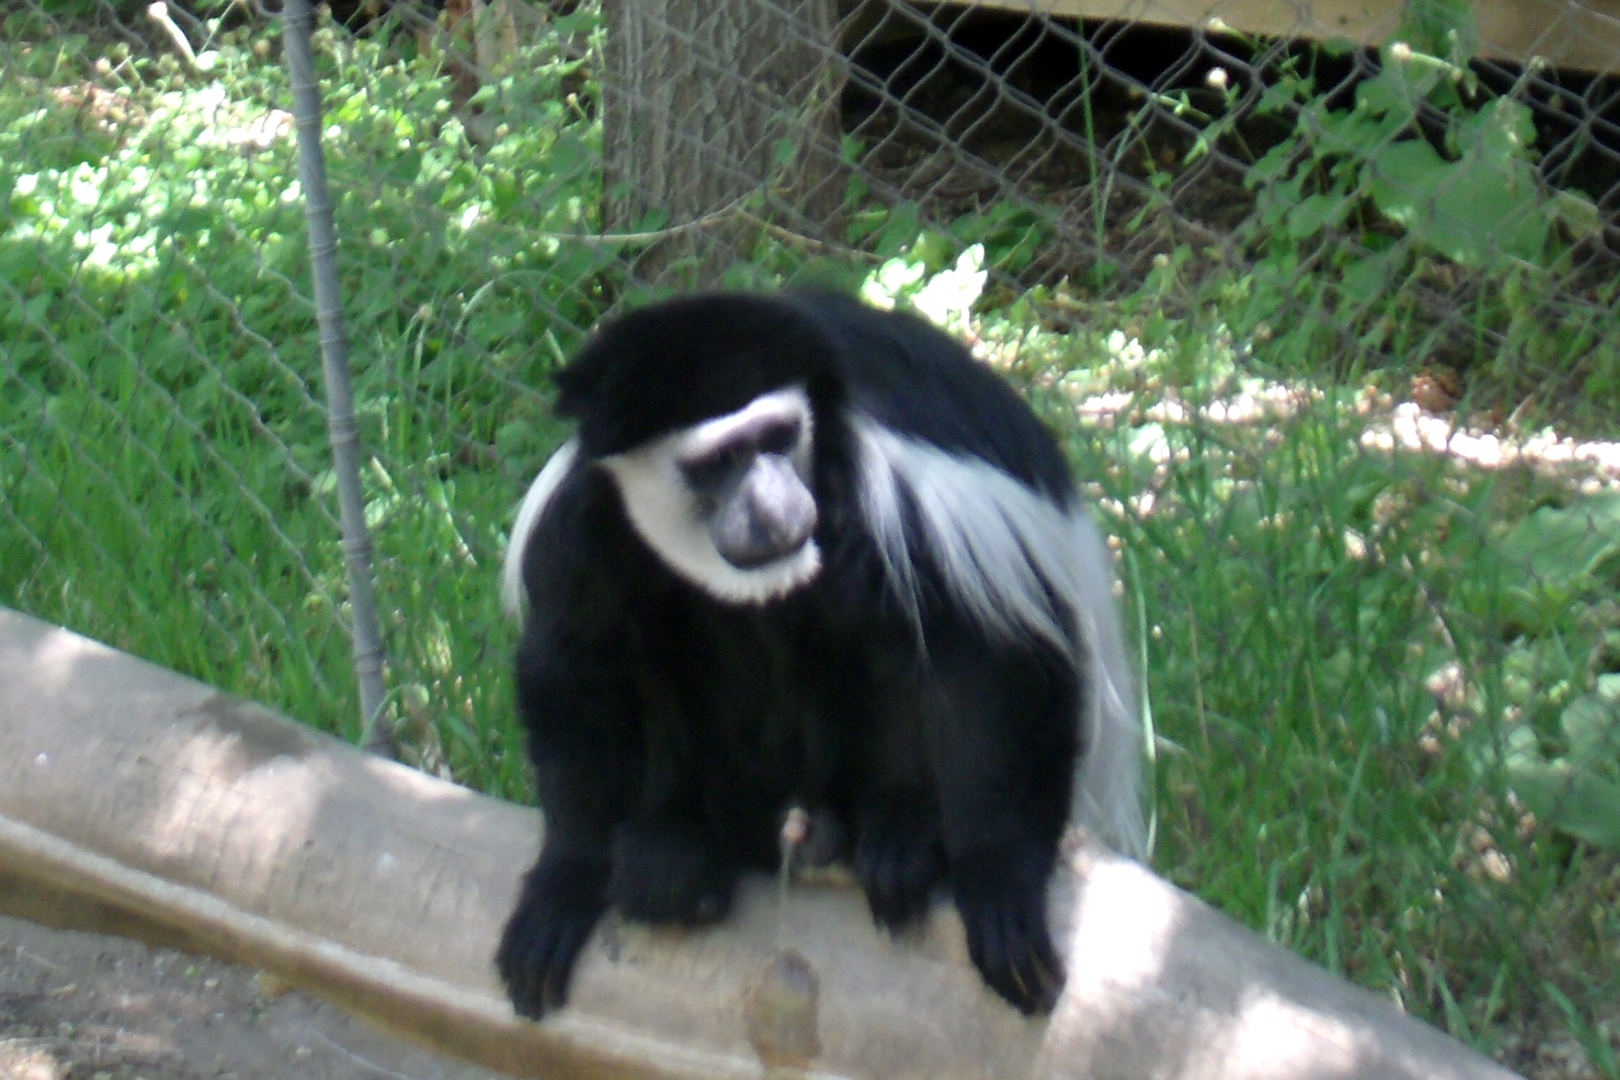 Photo of a monkey at the zoo.